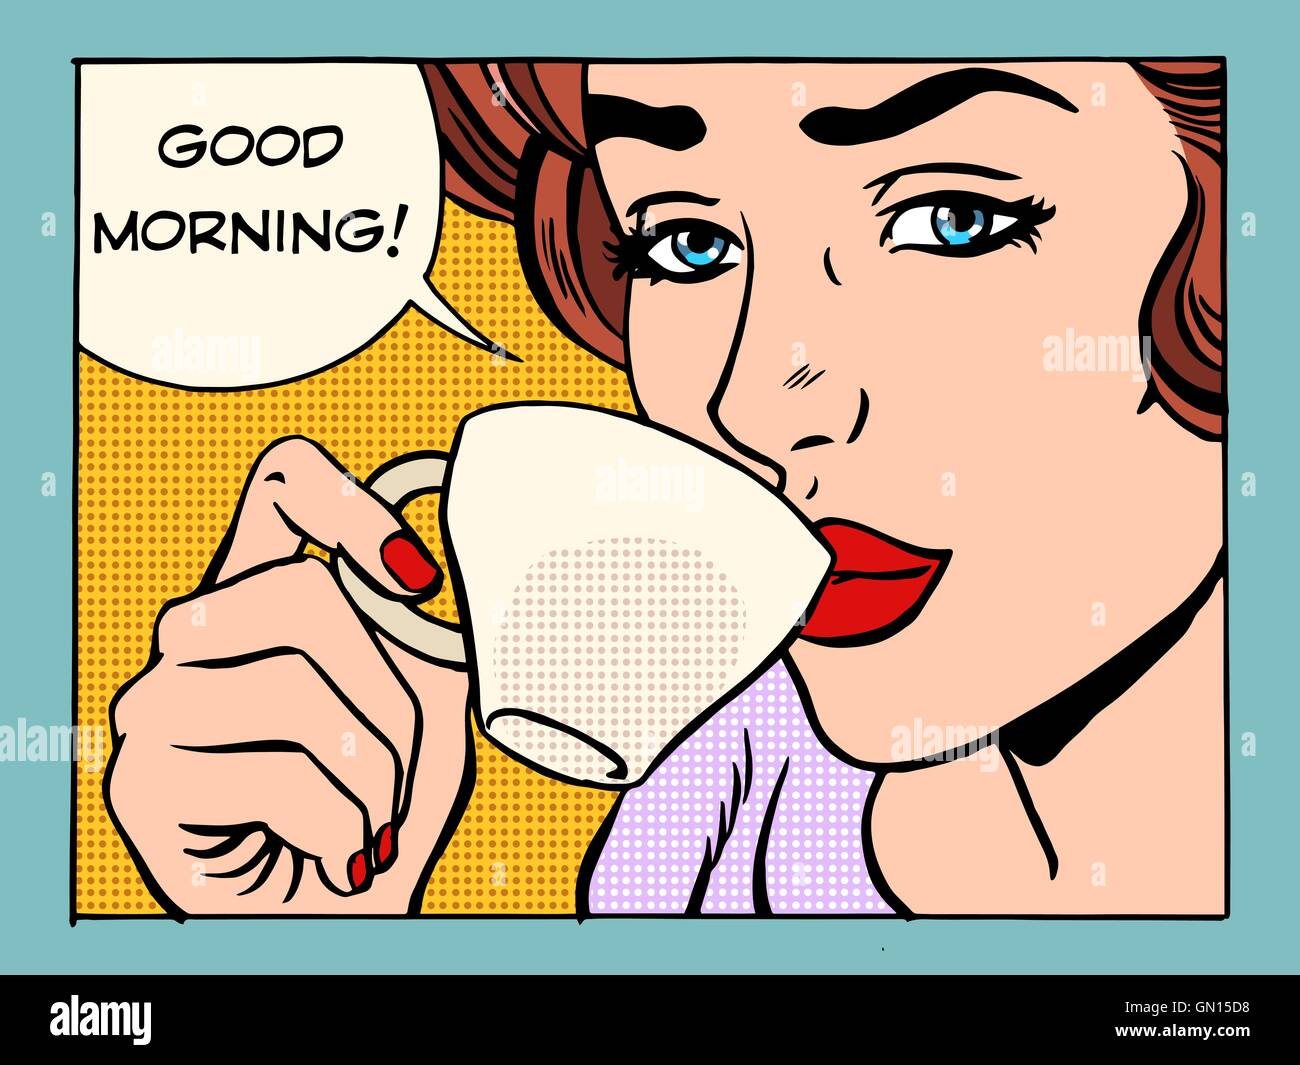 Good morning girl with Cup of coffee - Stock Vector